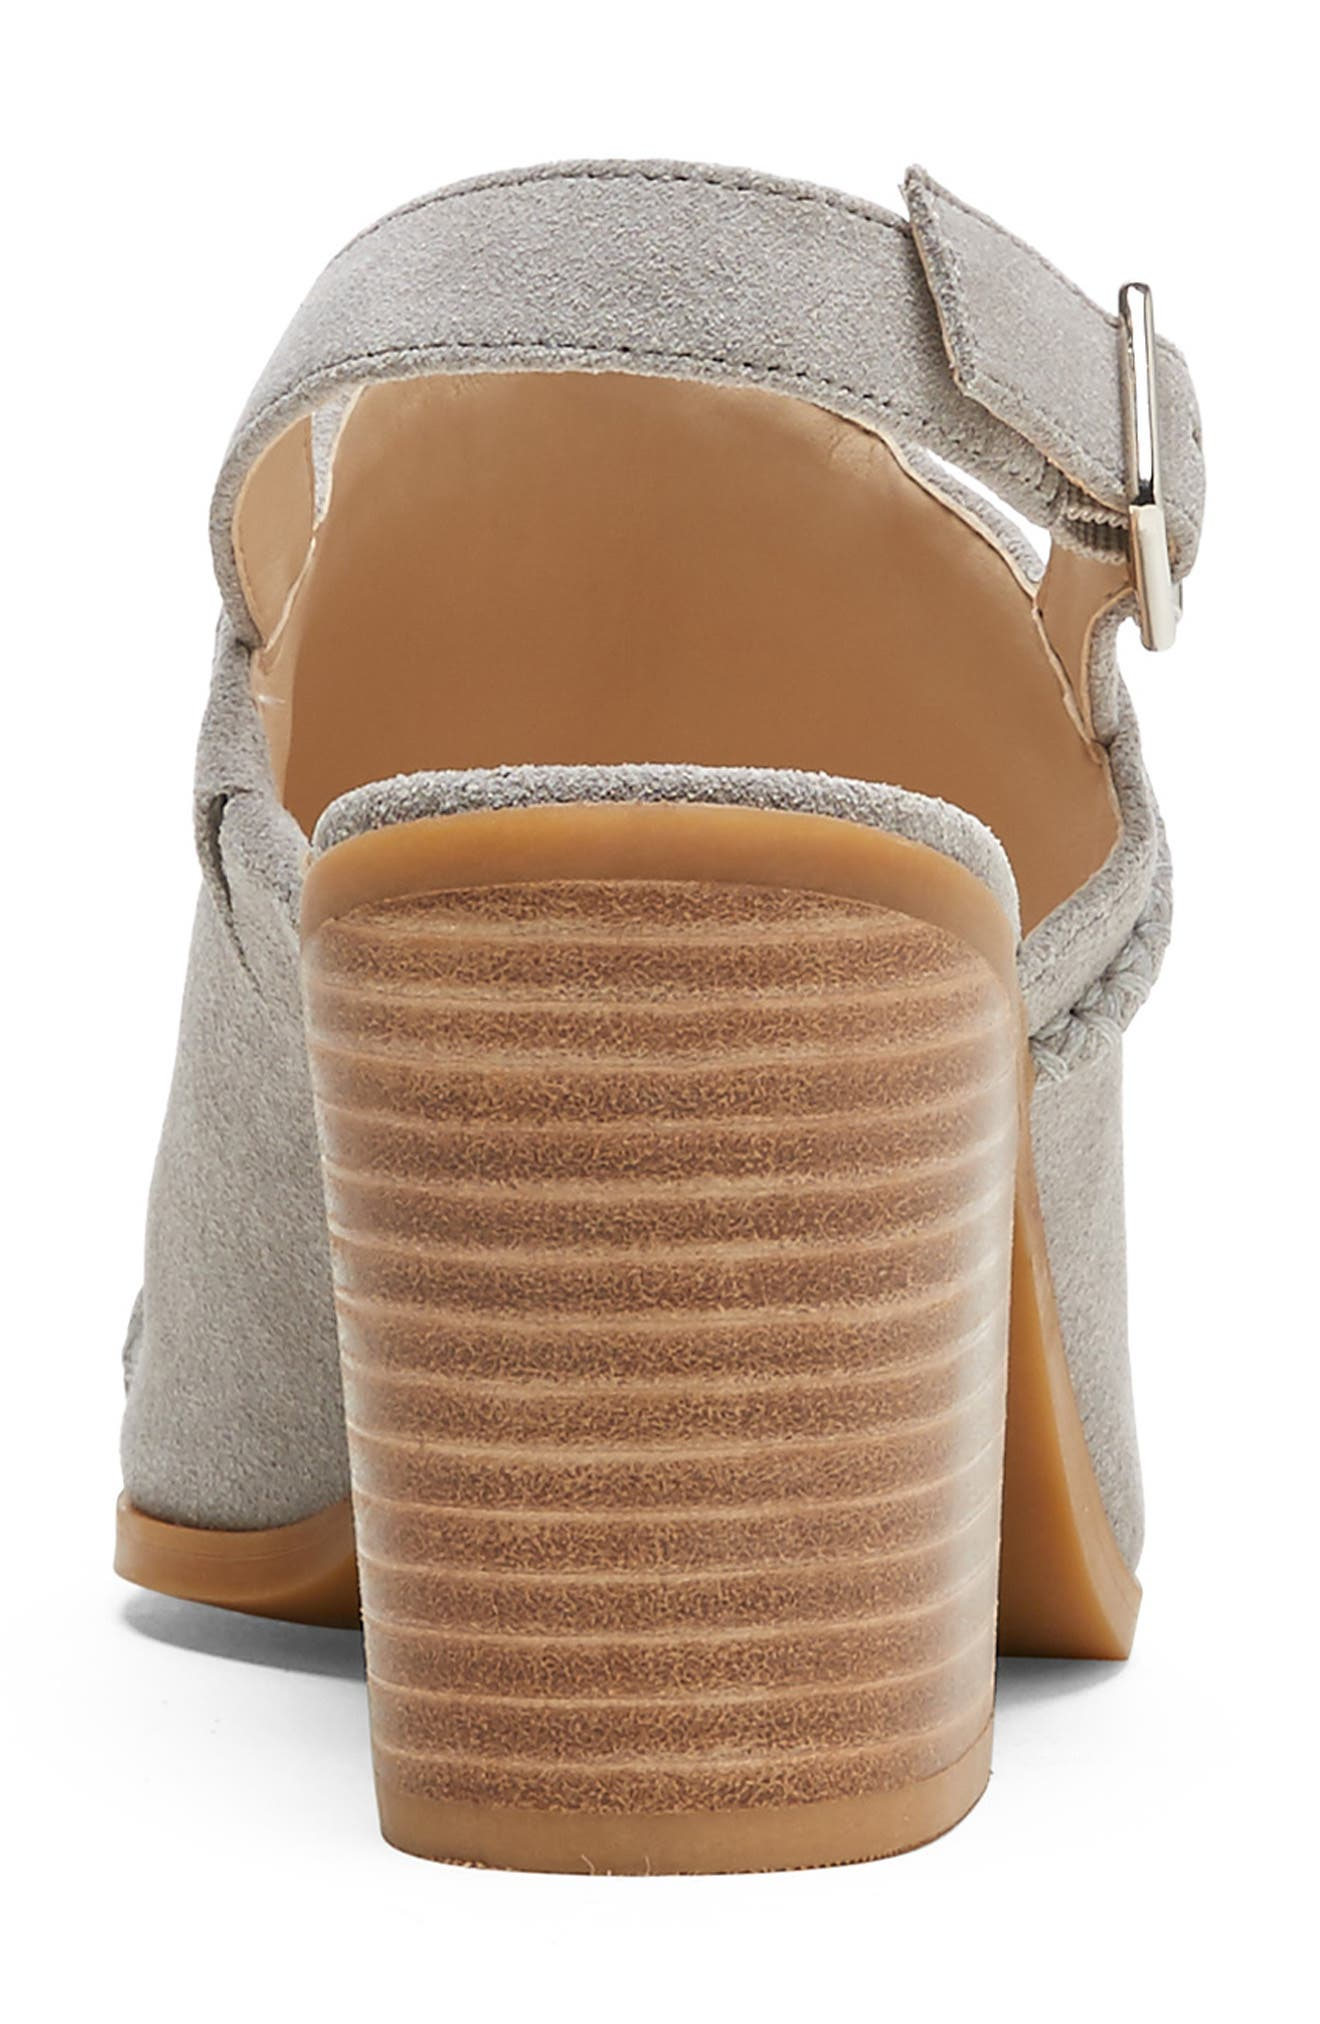 SOLE SOCIETY, Ceana Slingback Sandal, Alternate thumbnail 4, color, SOFT GREY SUEDE